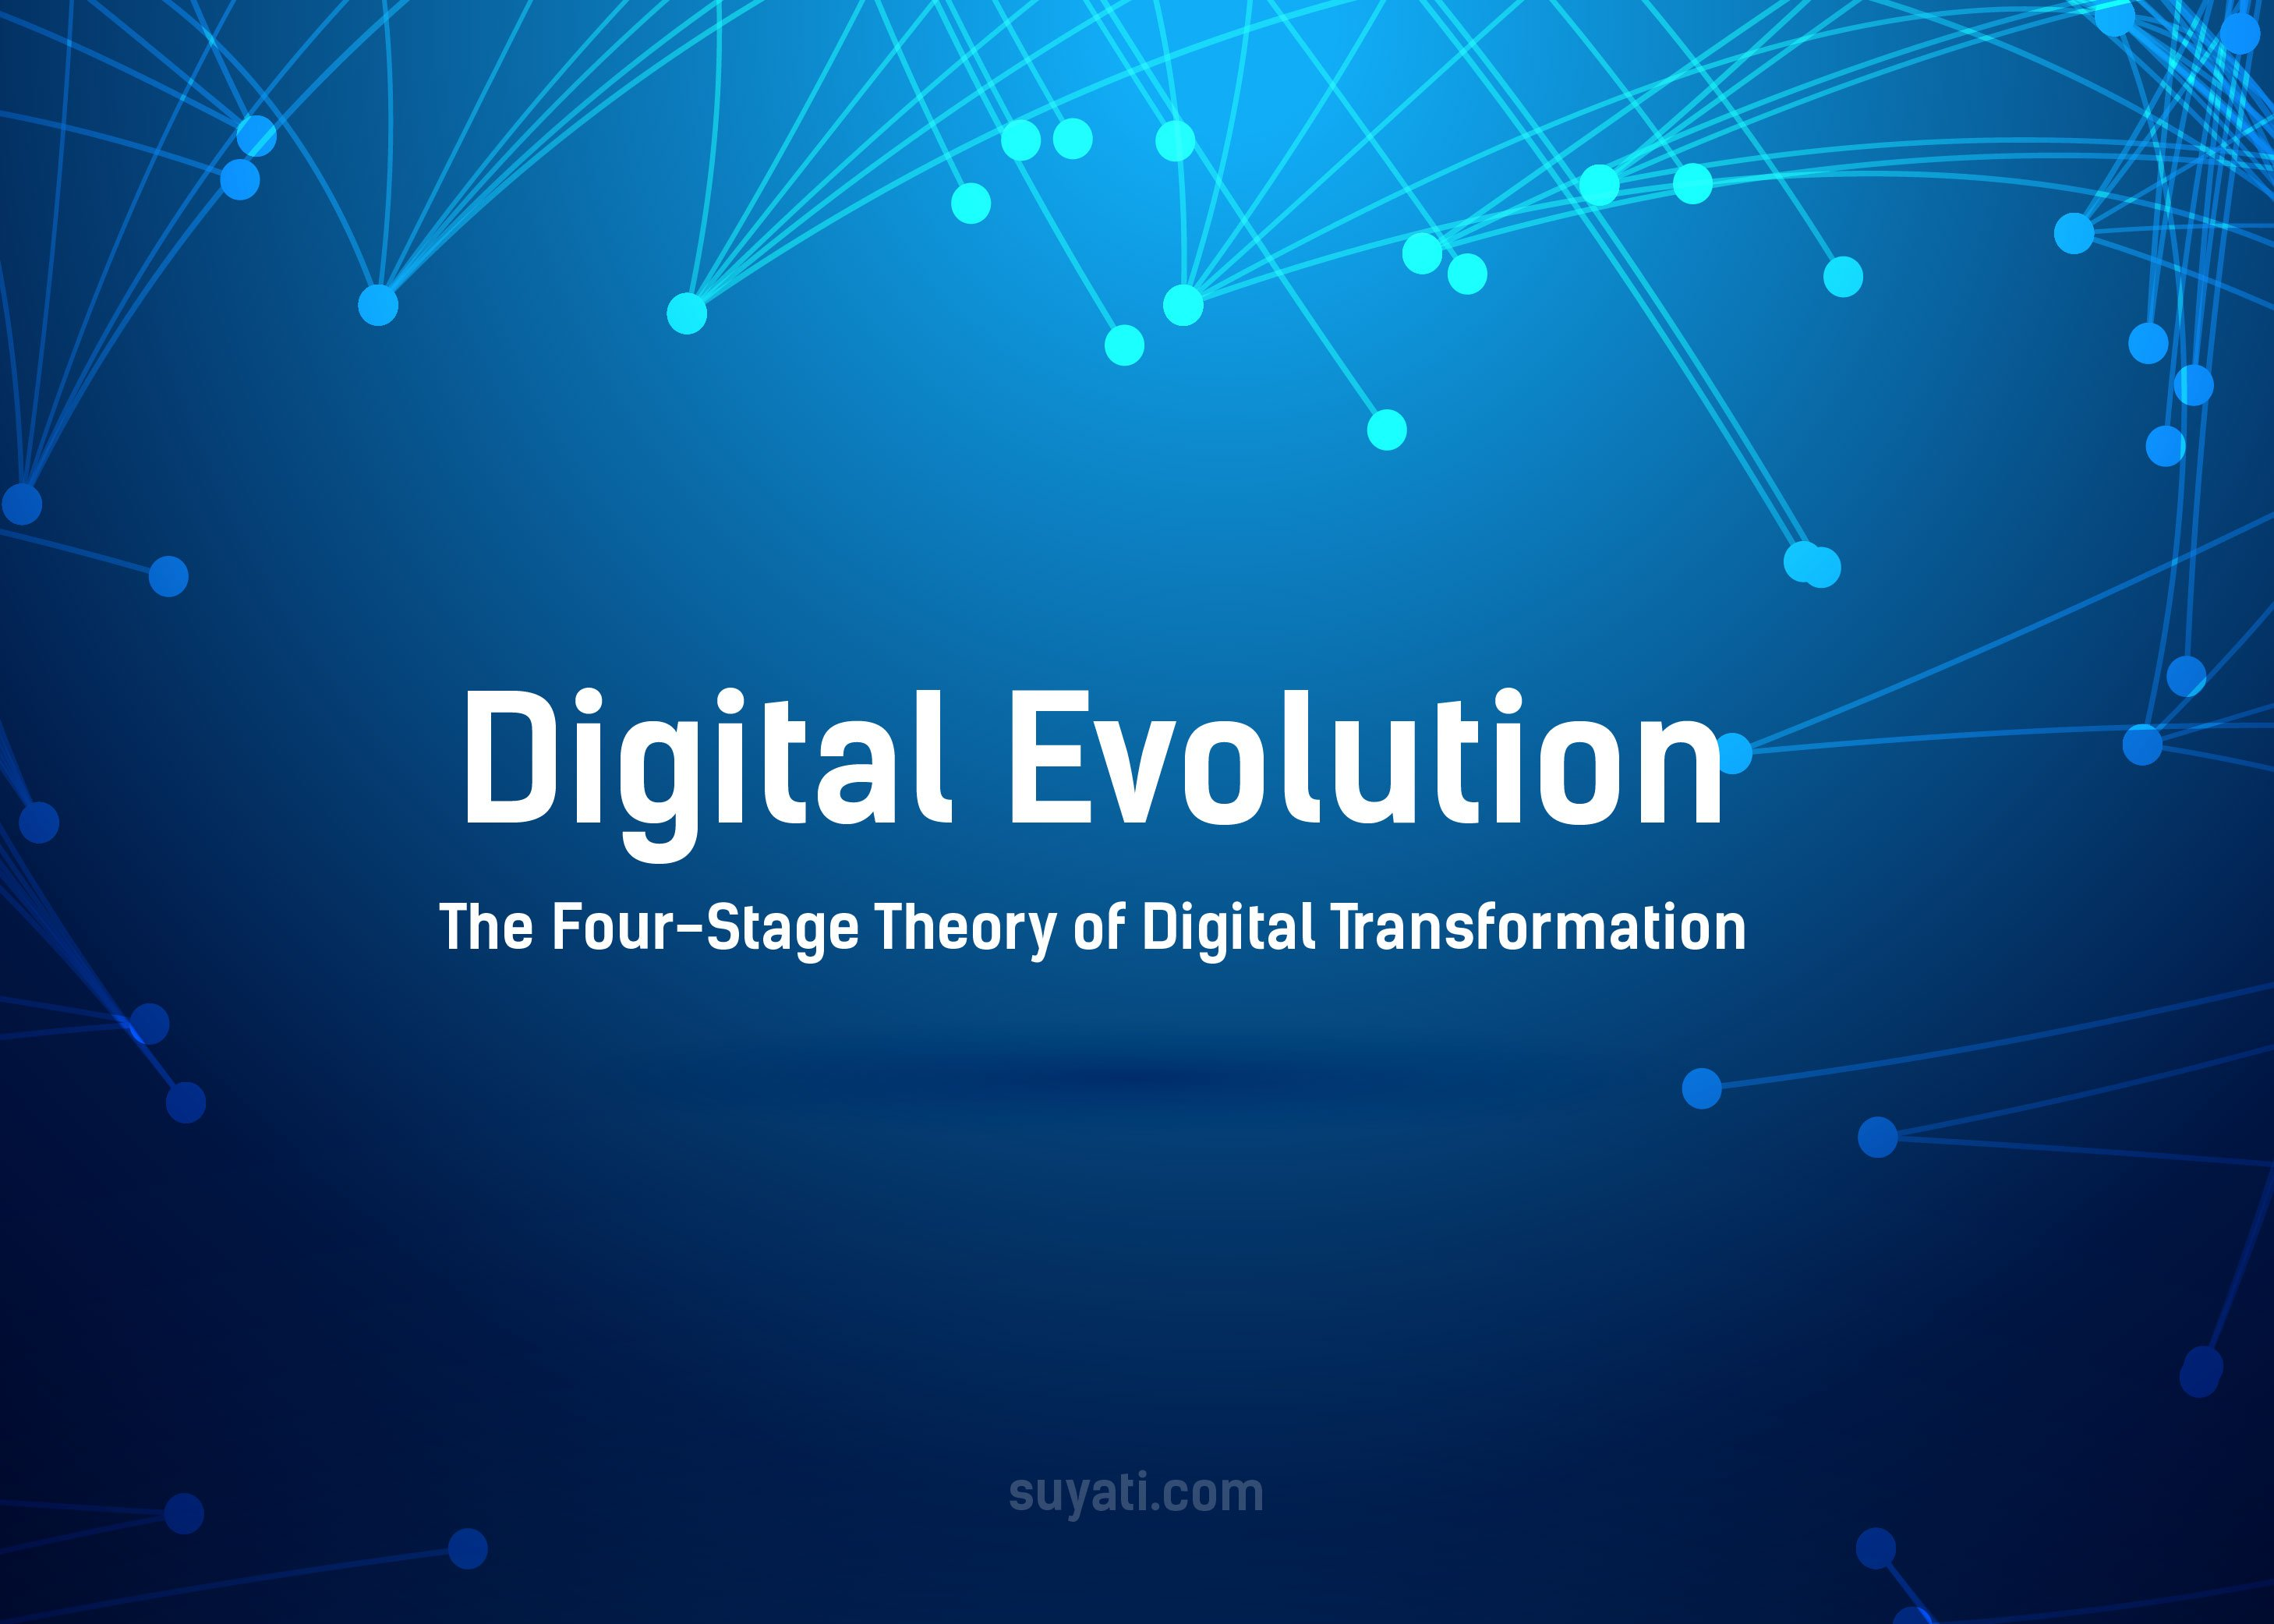 digital-evolution-the-four-stage-theory-of-digital-transformation